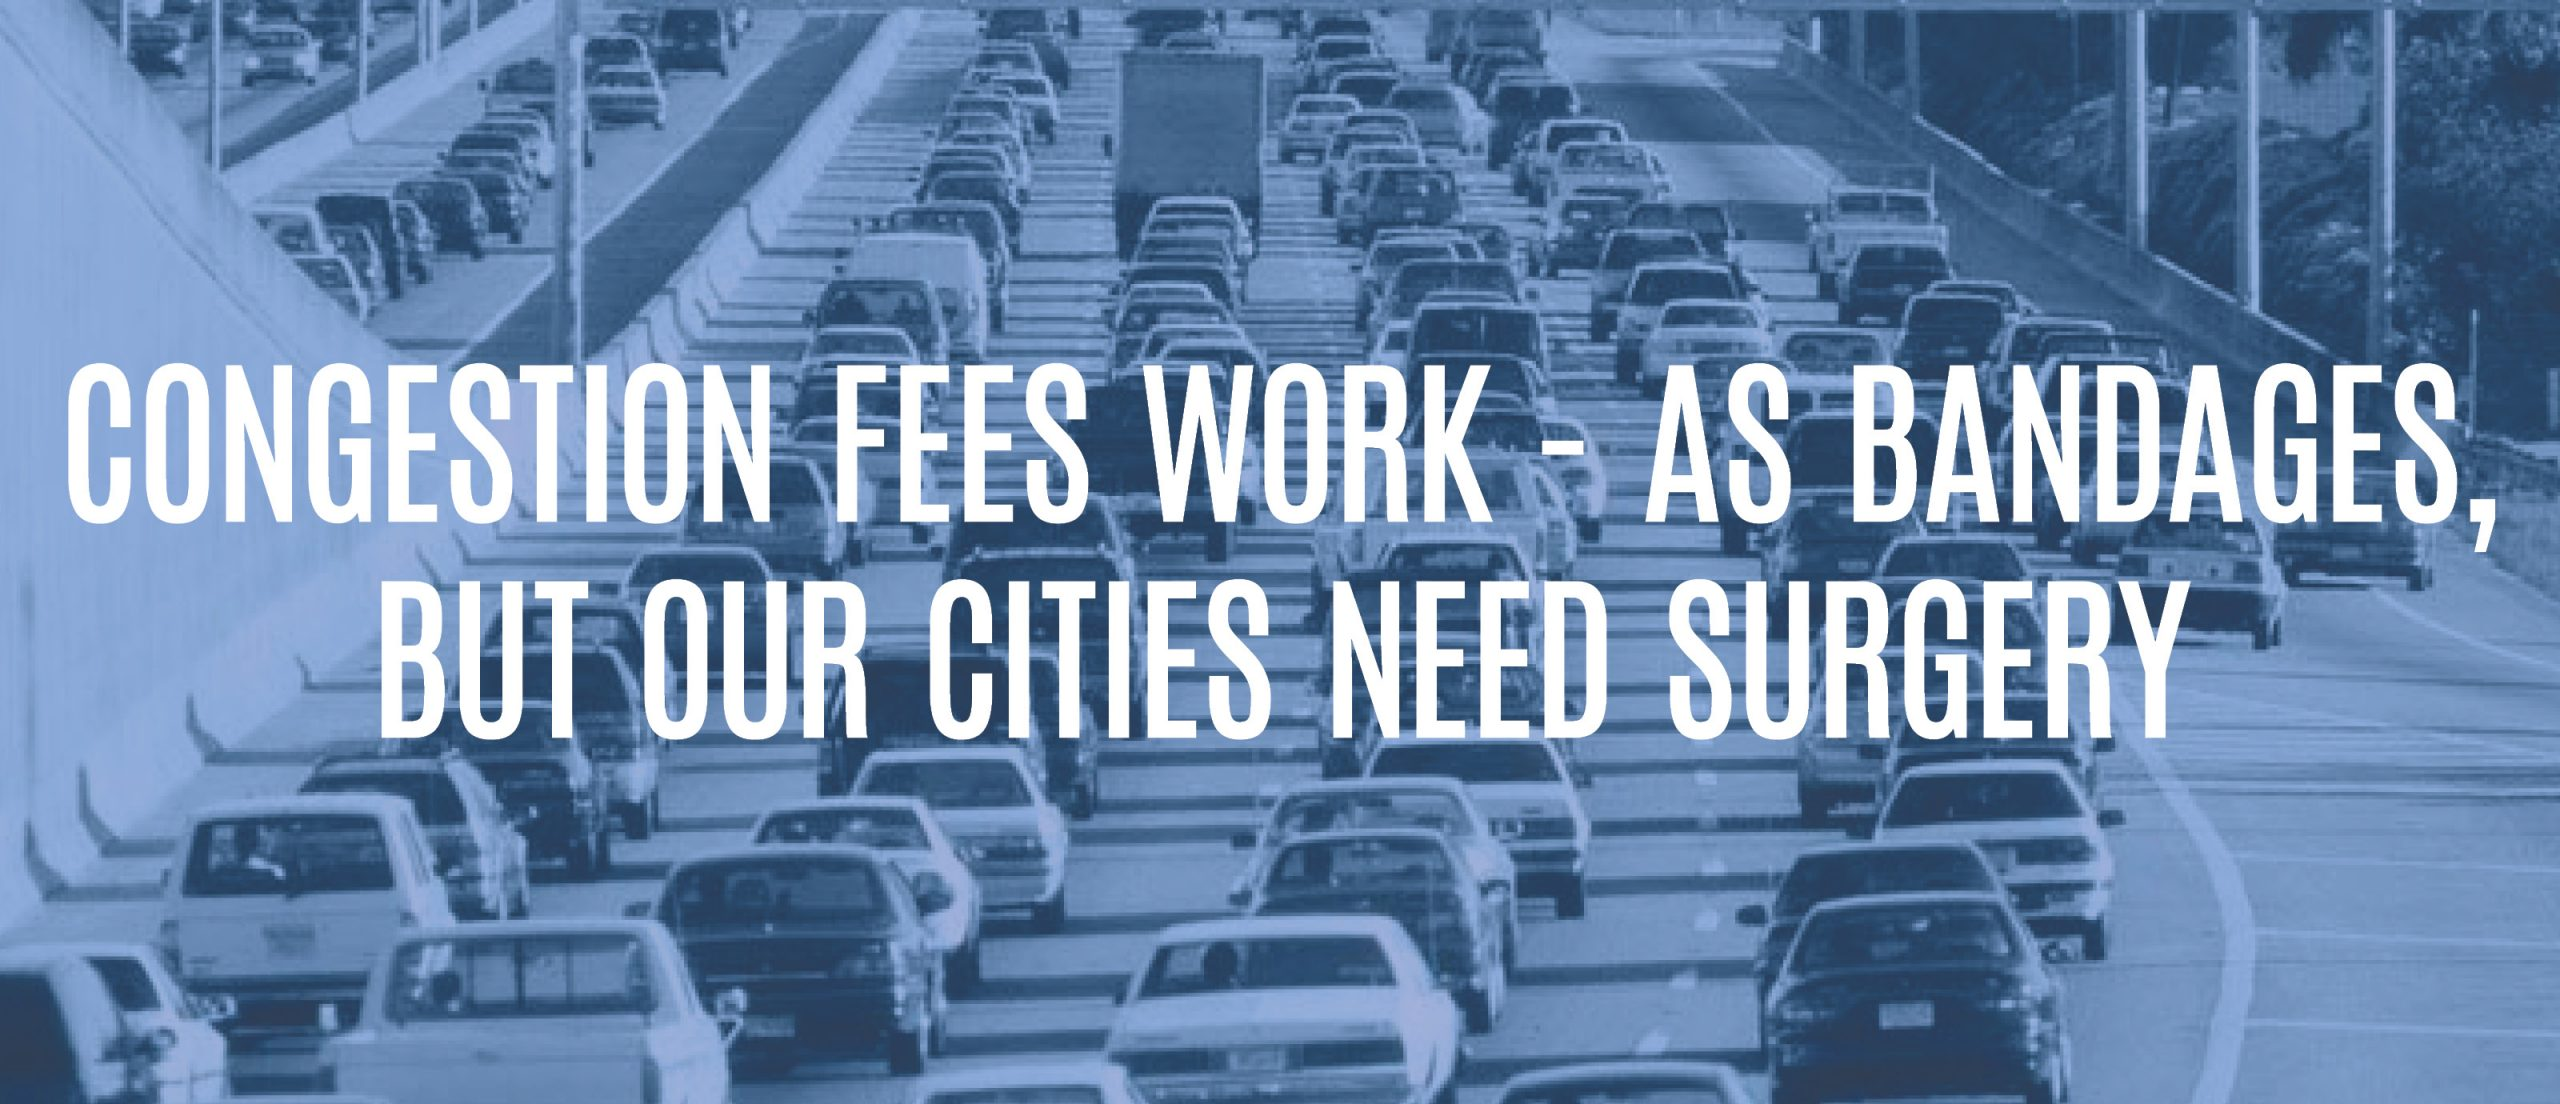 Blog title: Congestion fees work - as bandages, but our cities need surgery